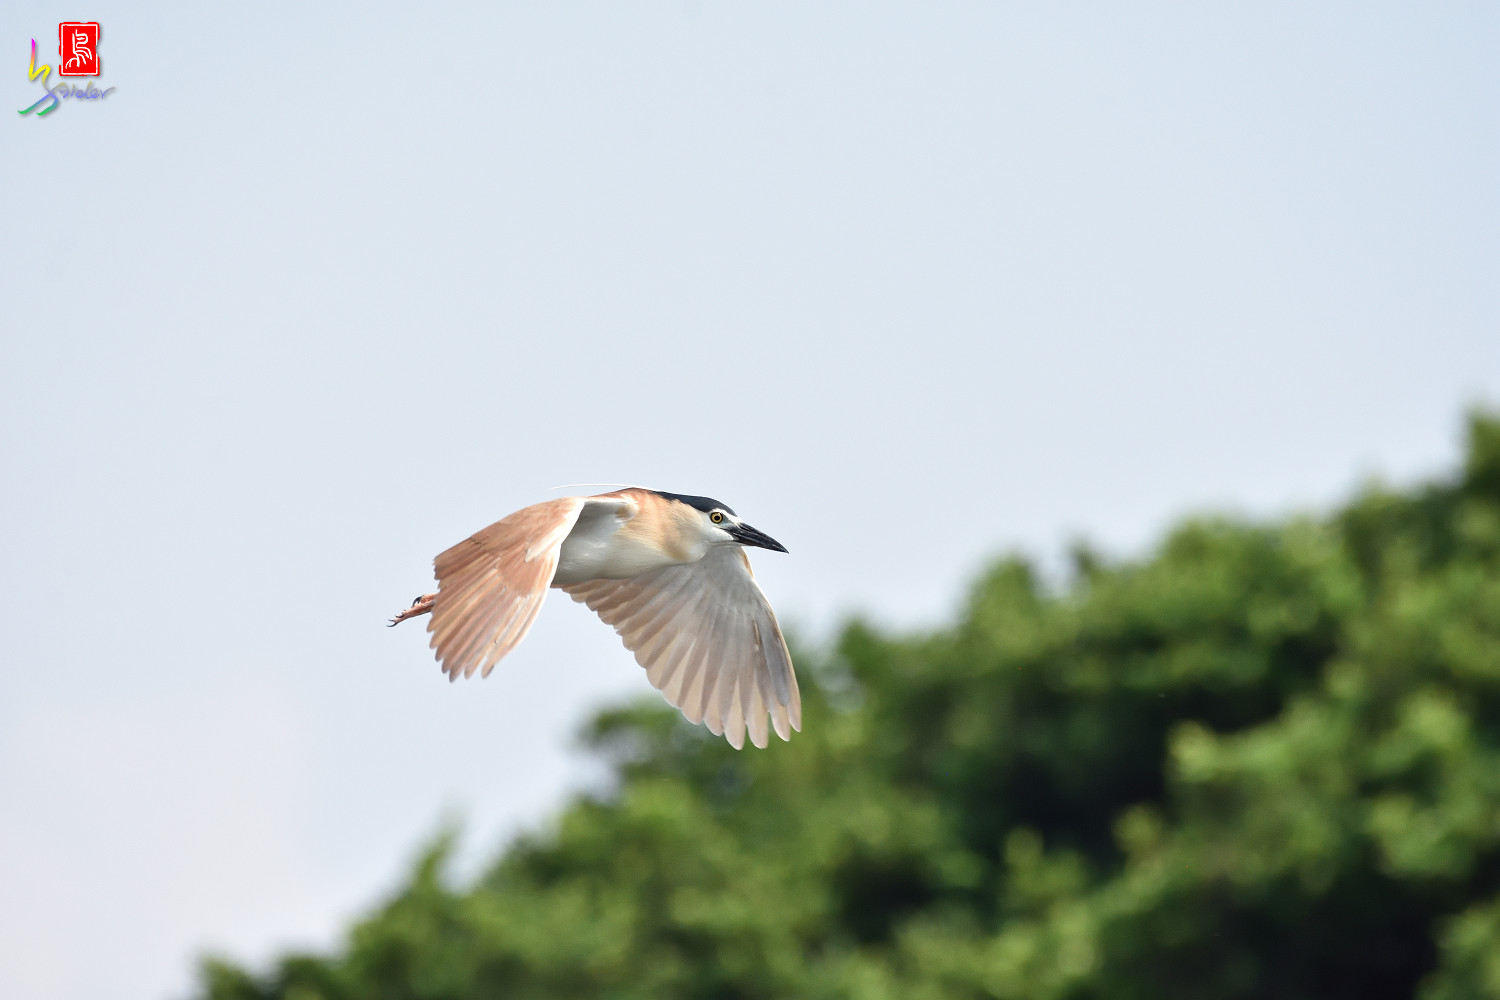 Rufous_Night_Heron_7168